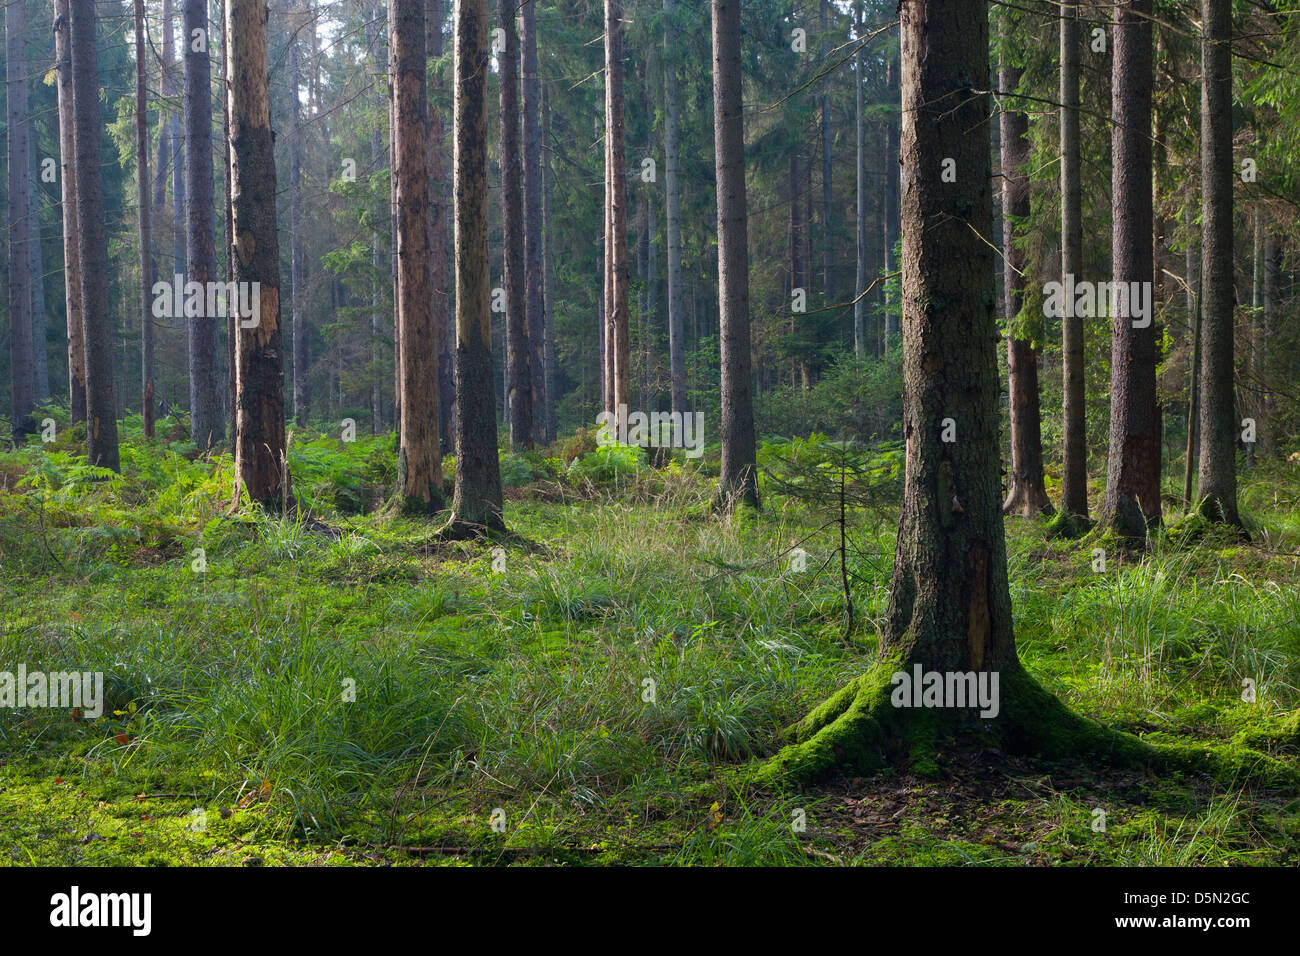 Early autumn morning in the forest with mist and dead spruces still standing - Stock Image